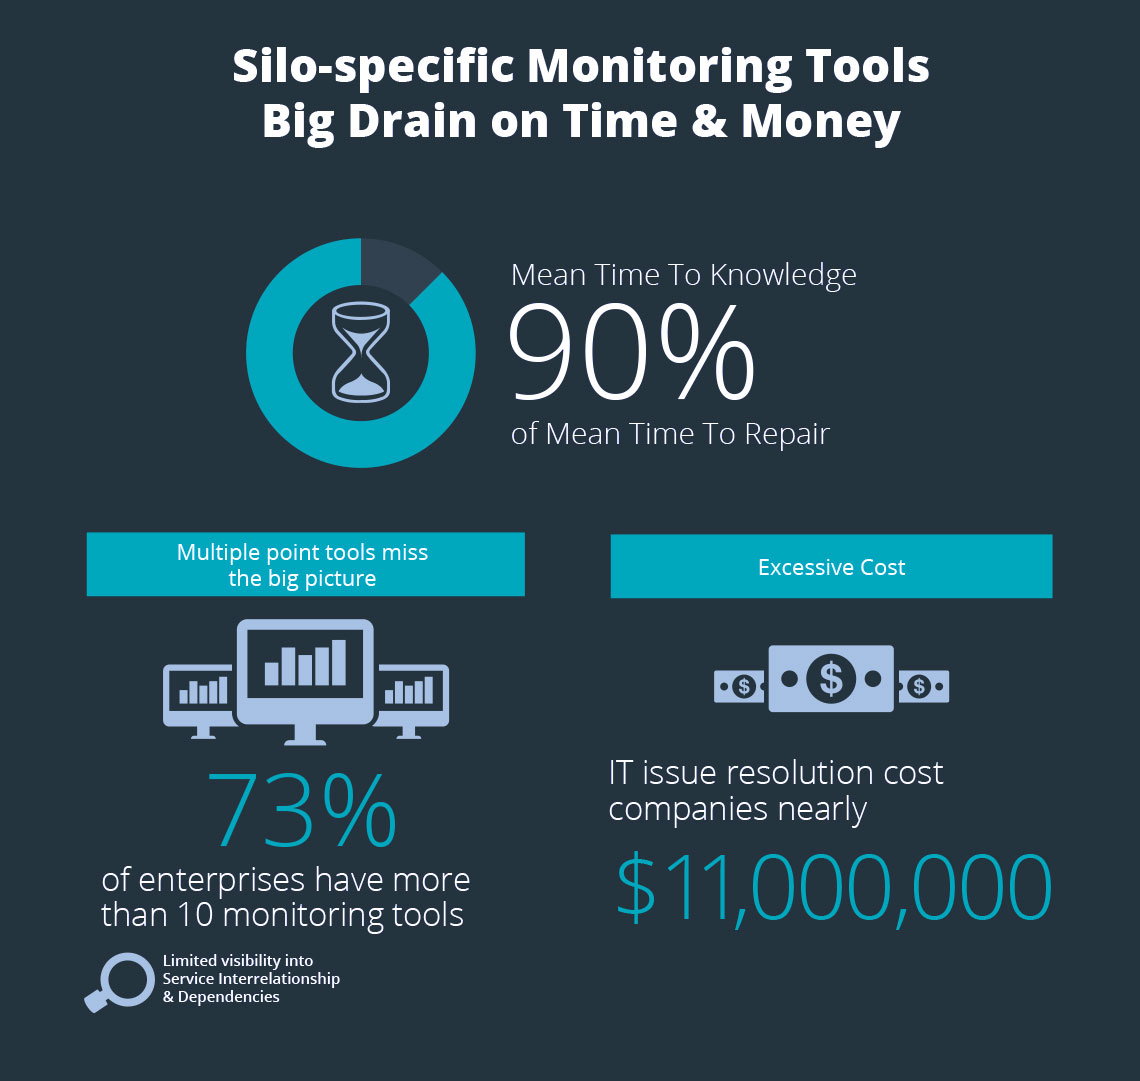 Silo-specific Monitoring Tools Drain on Money